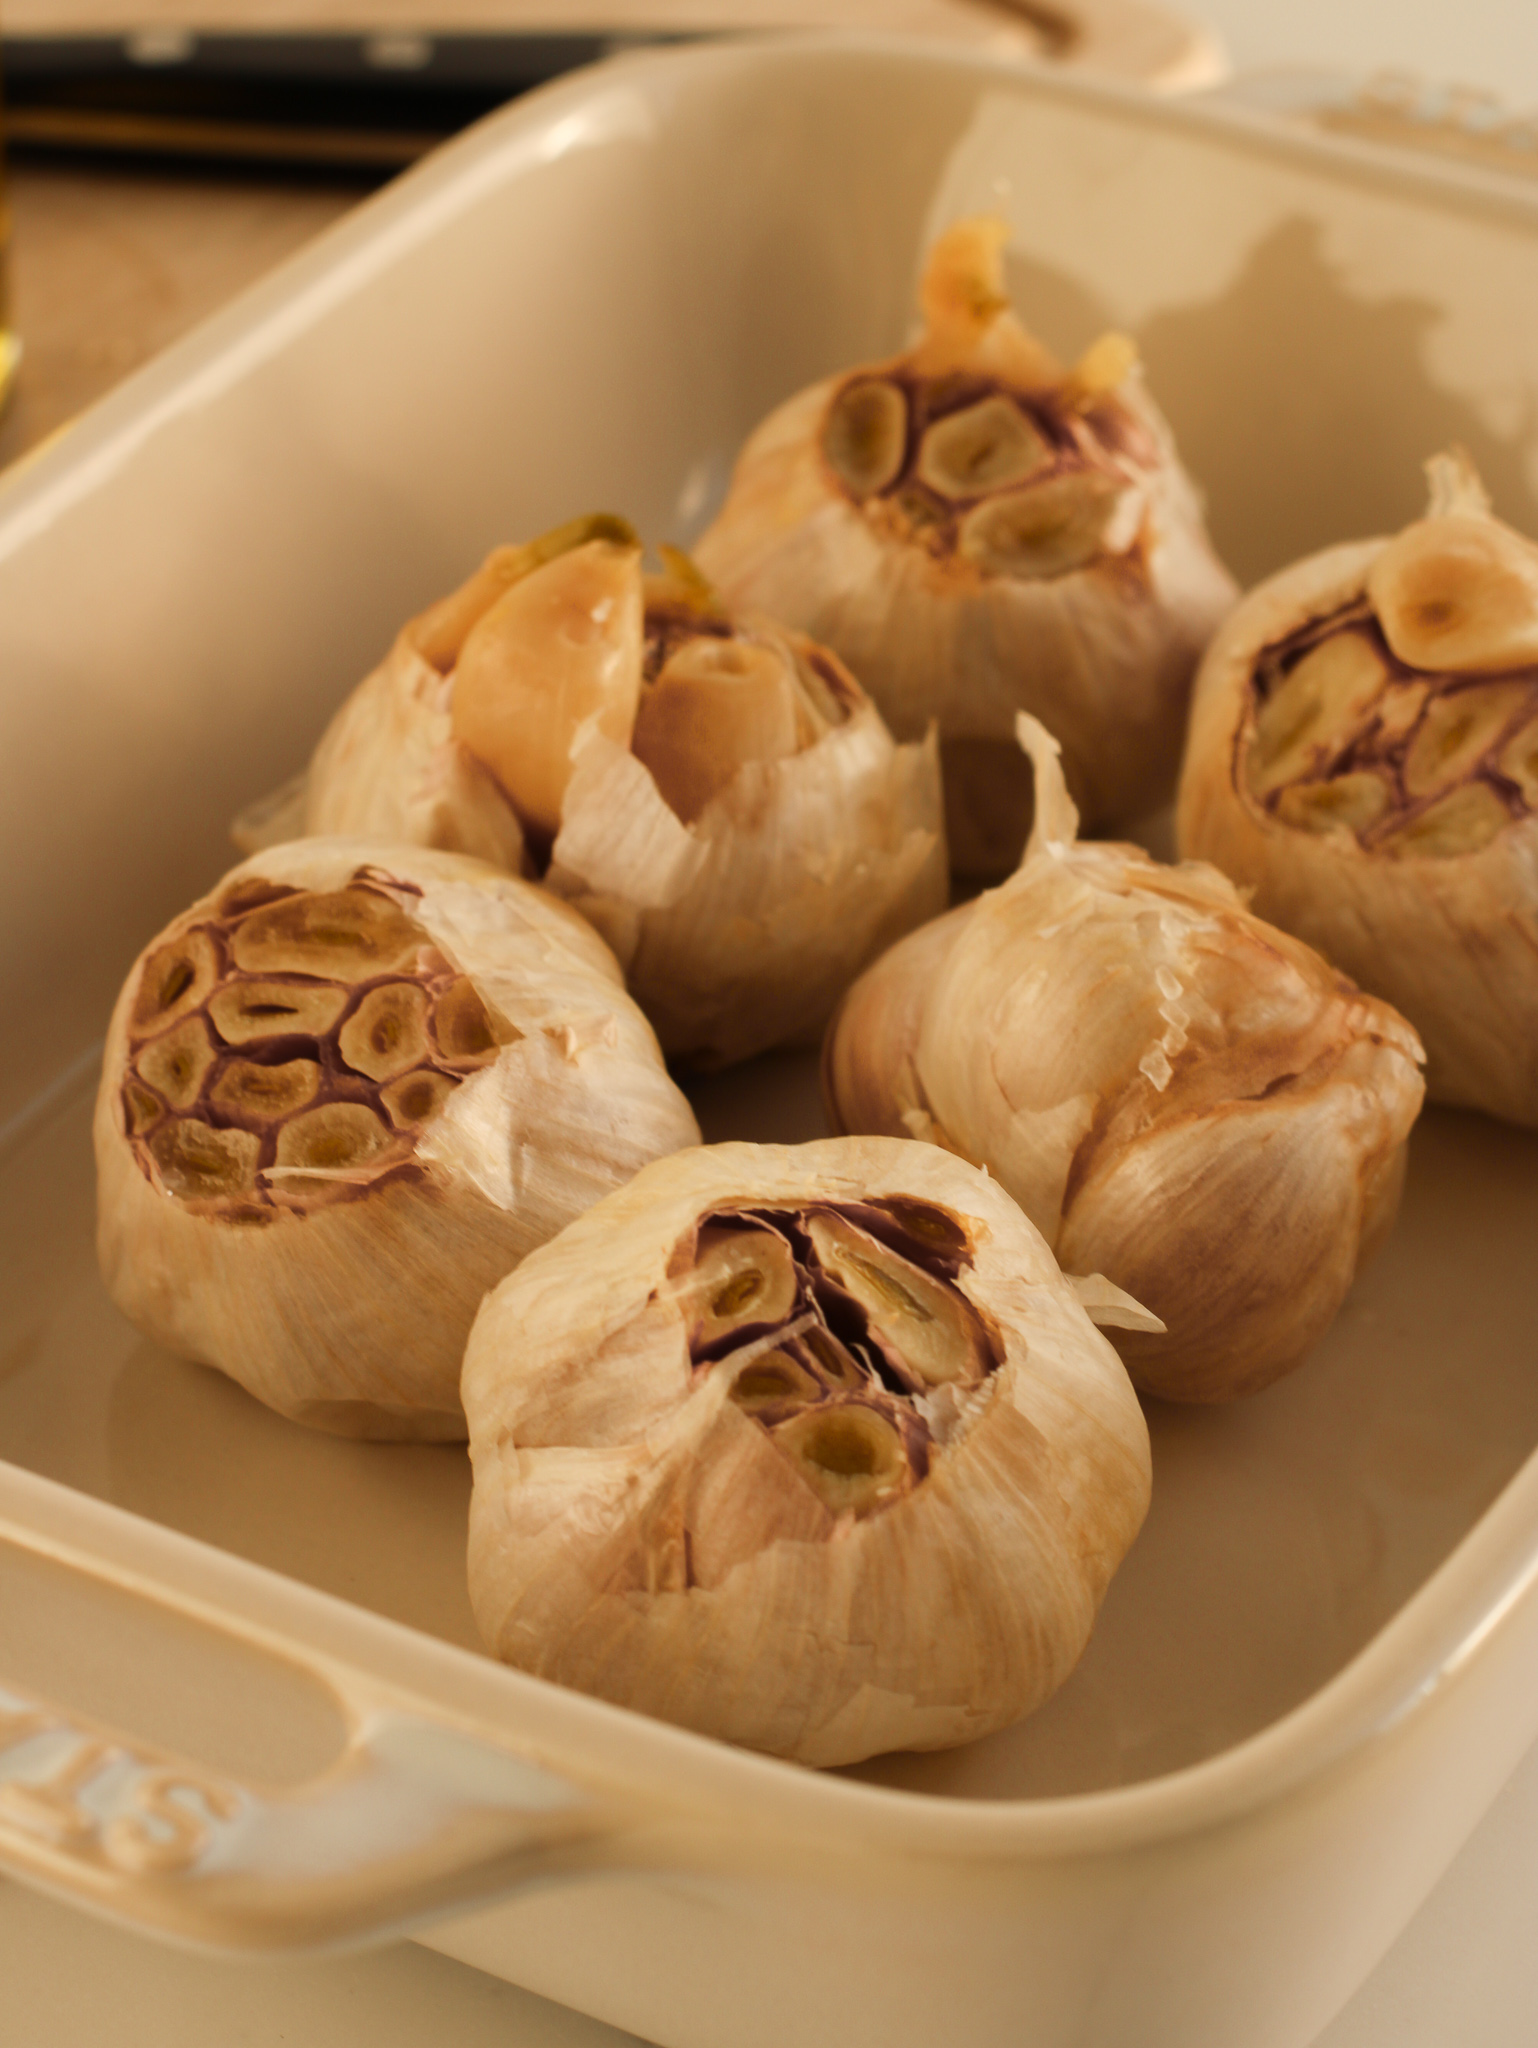 roasted garlic in a white baking dish partially squeezed out ready to be used or stored for later.